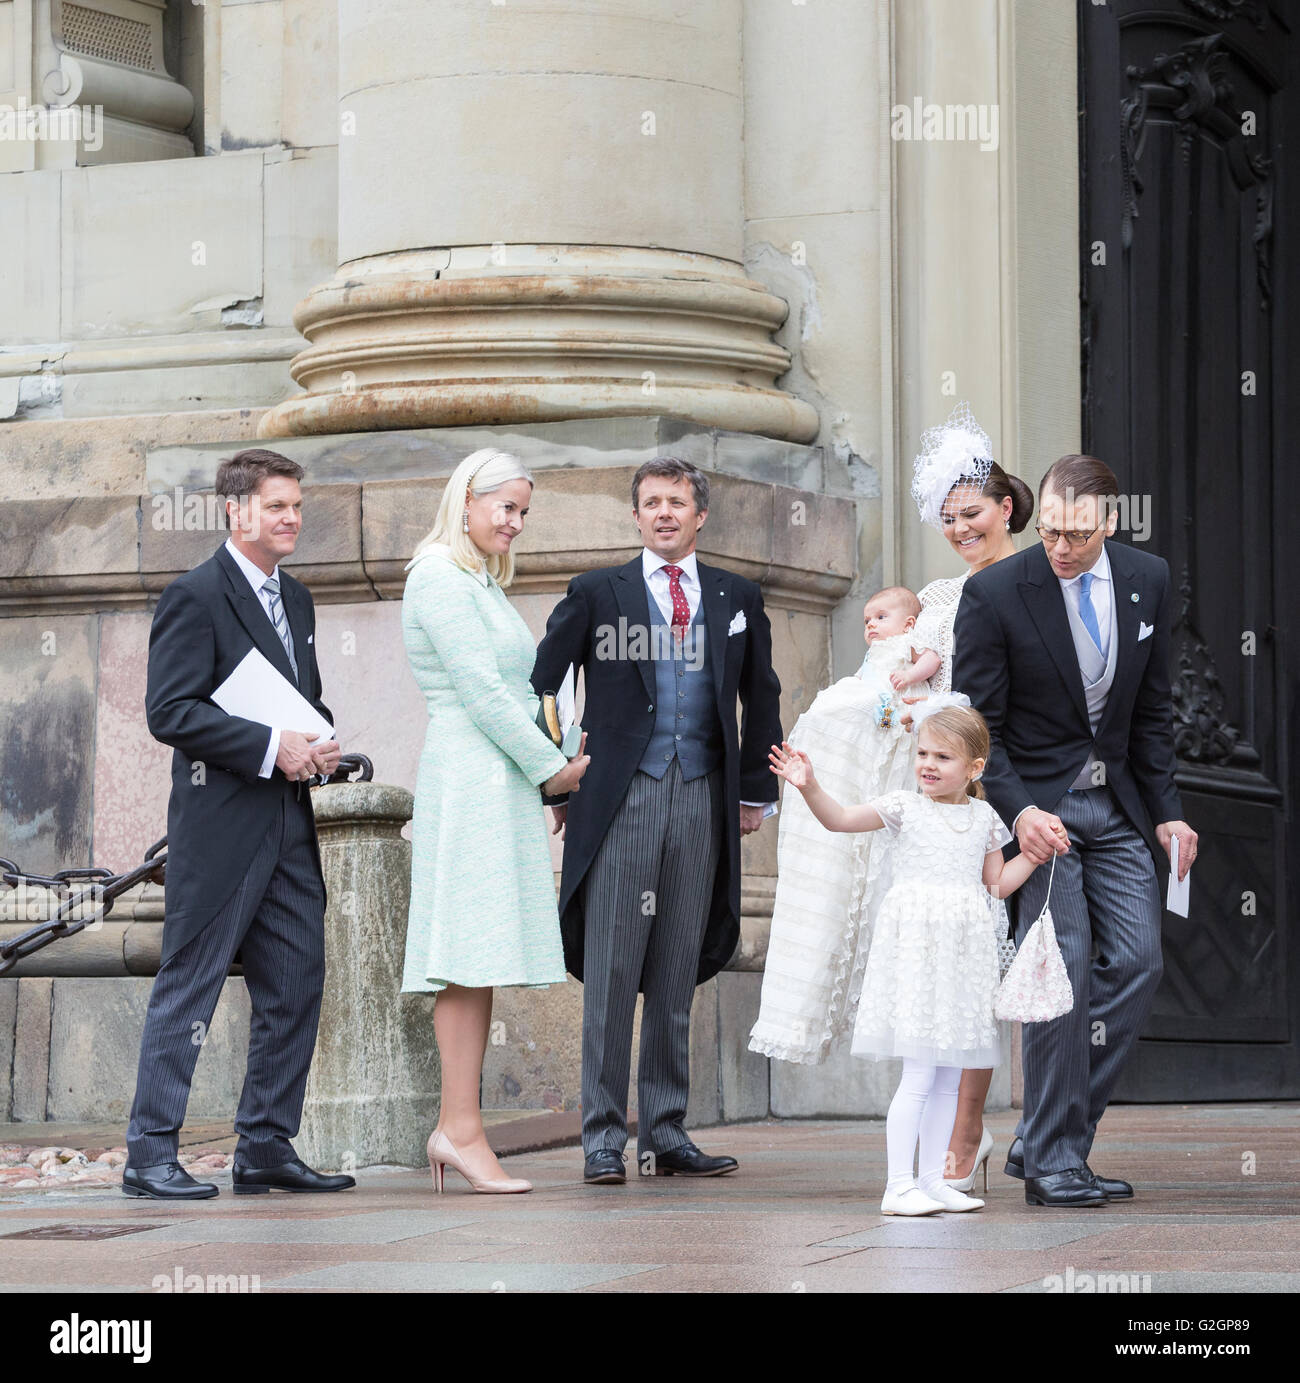 Royal Baptism in Sweden May 2016 – Prince Oscar of Sweden. Princess Estelle waves - Stock Image